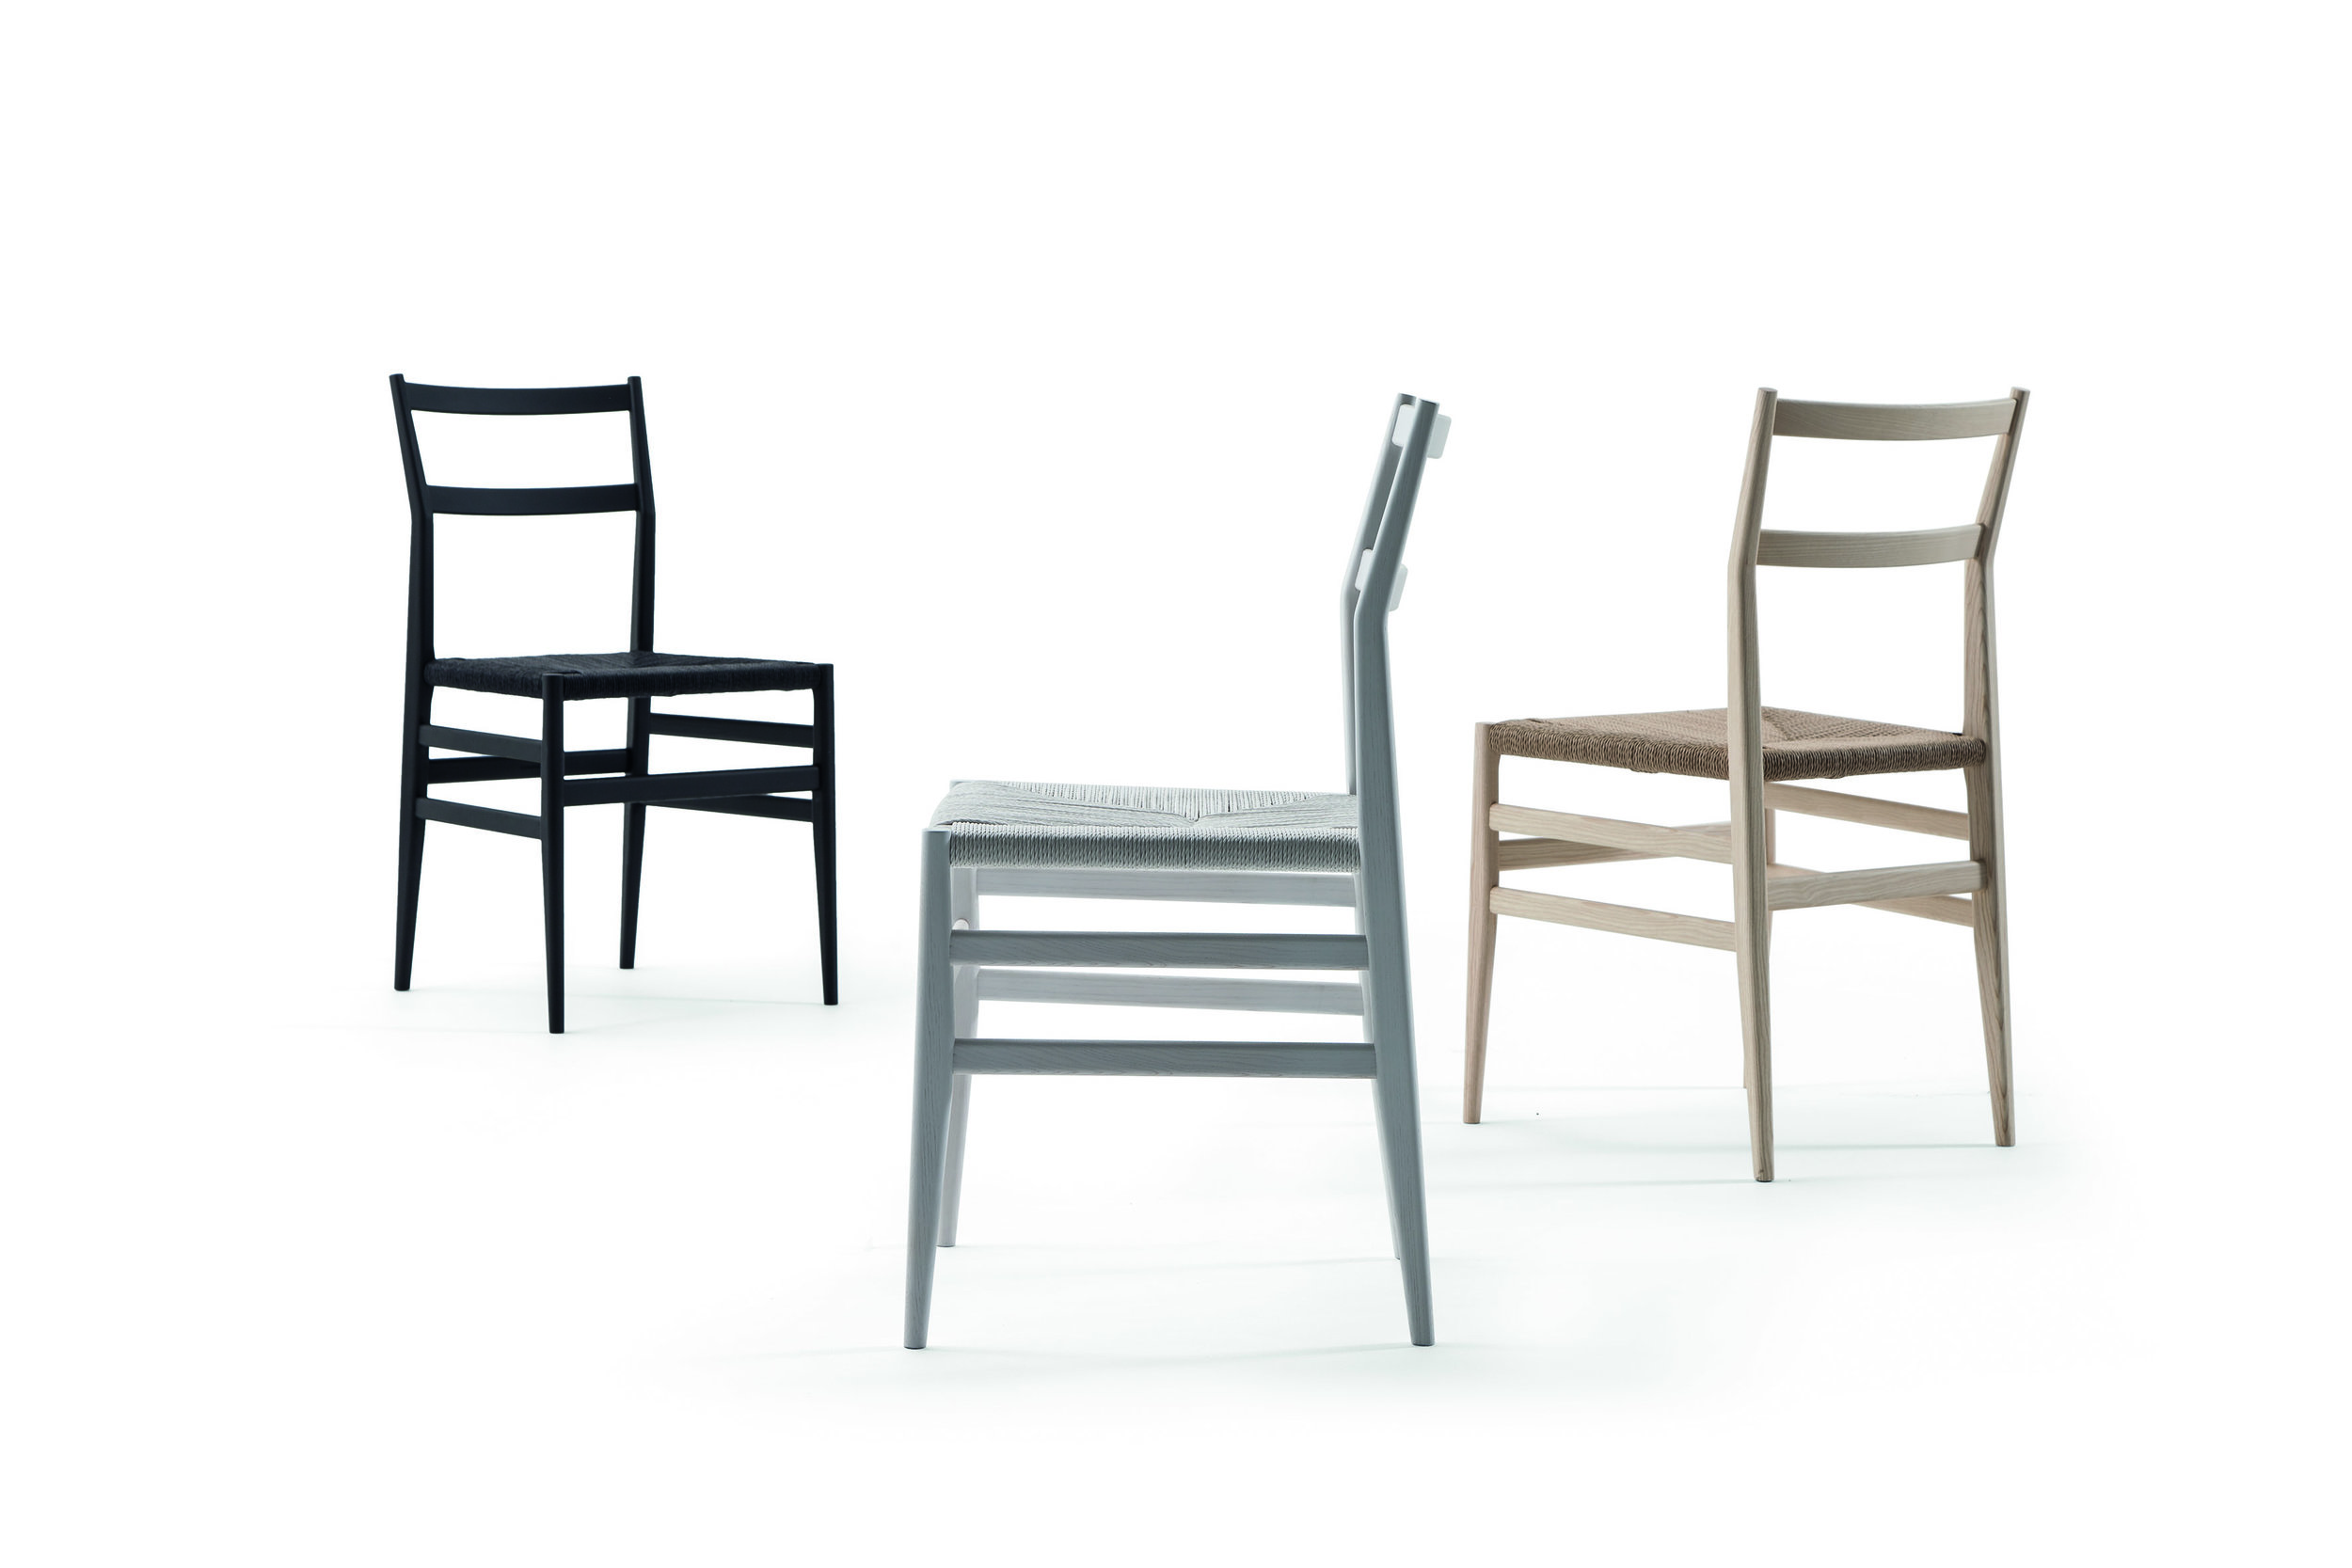 Gio Ponti's 646 Leggera collection designed in the 1950s for Cassina, now updated with new colours and upholstery.